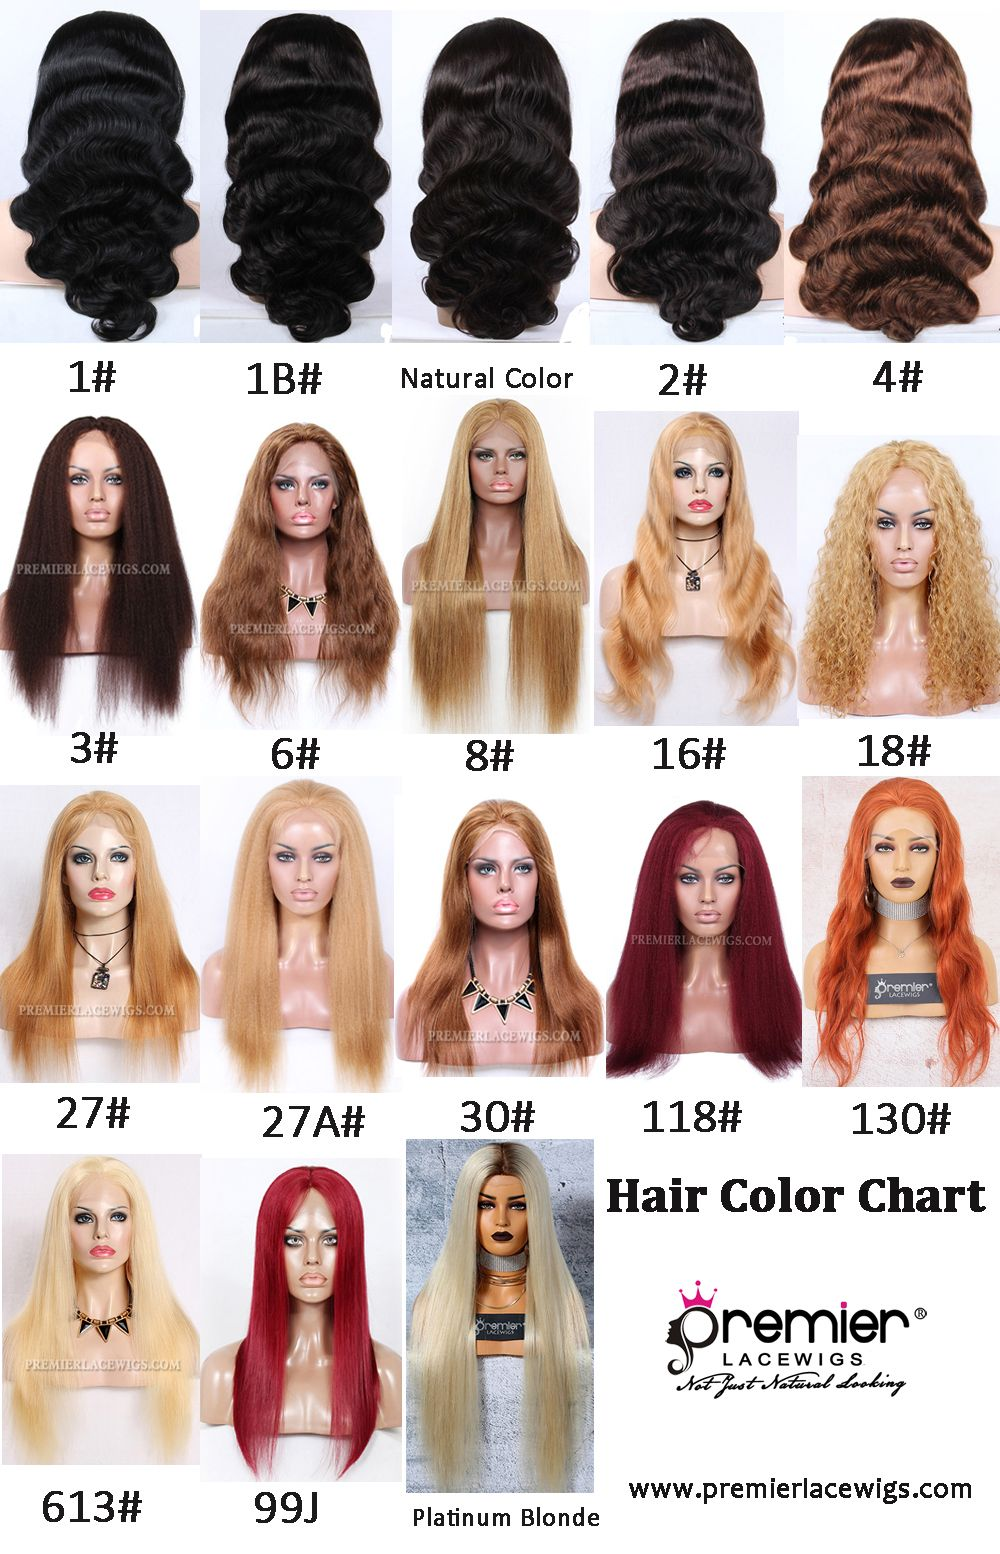 Hair Color Chart For Human Hair Wigs Hair Color Chart Lace Wigs Hair Color